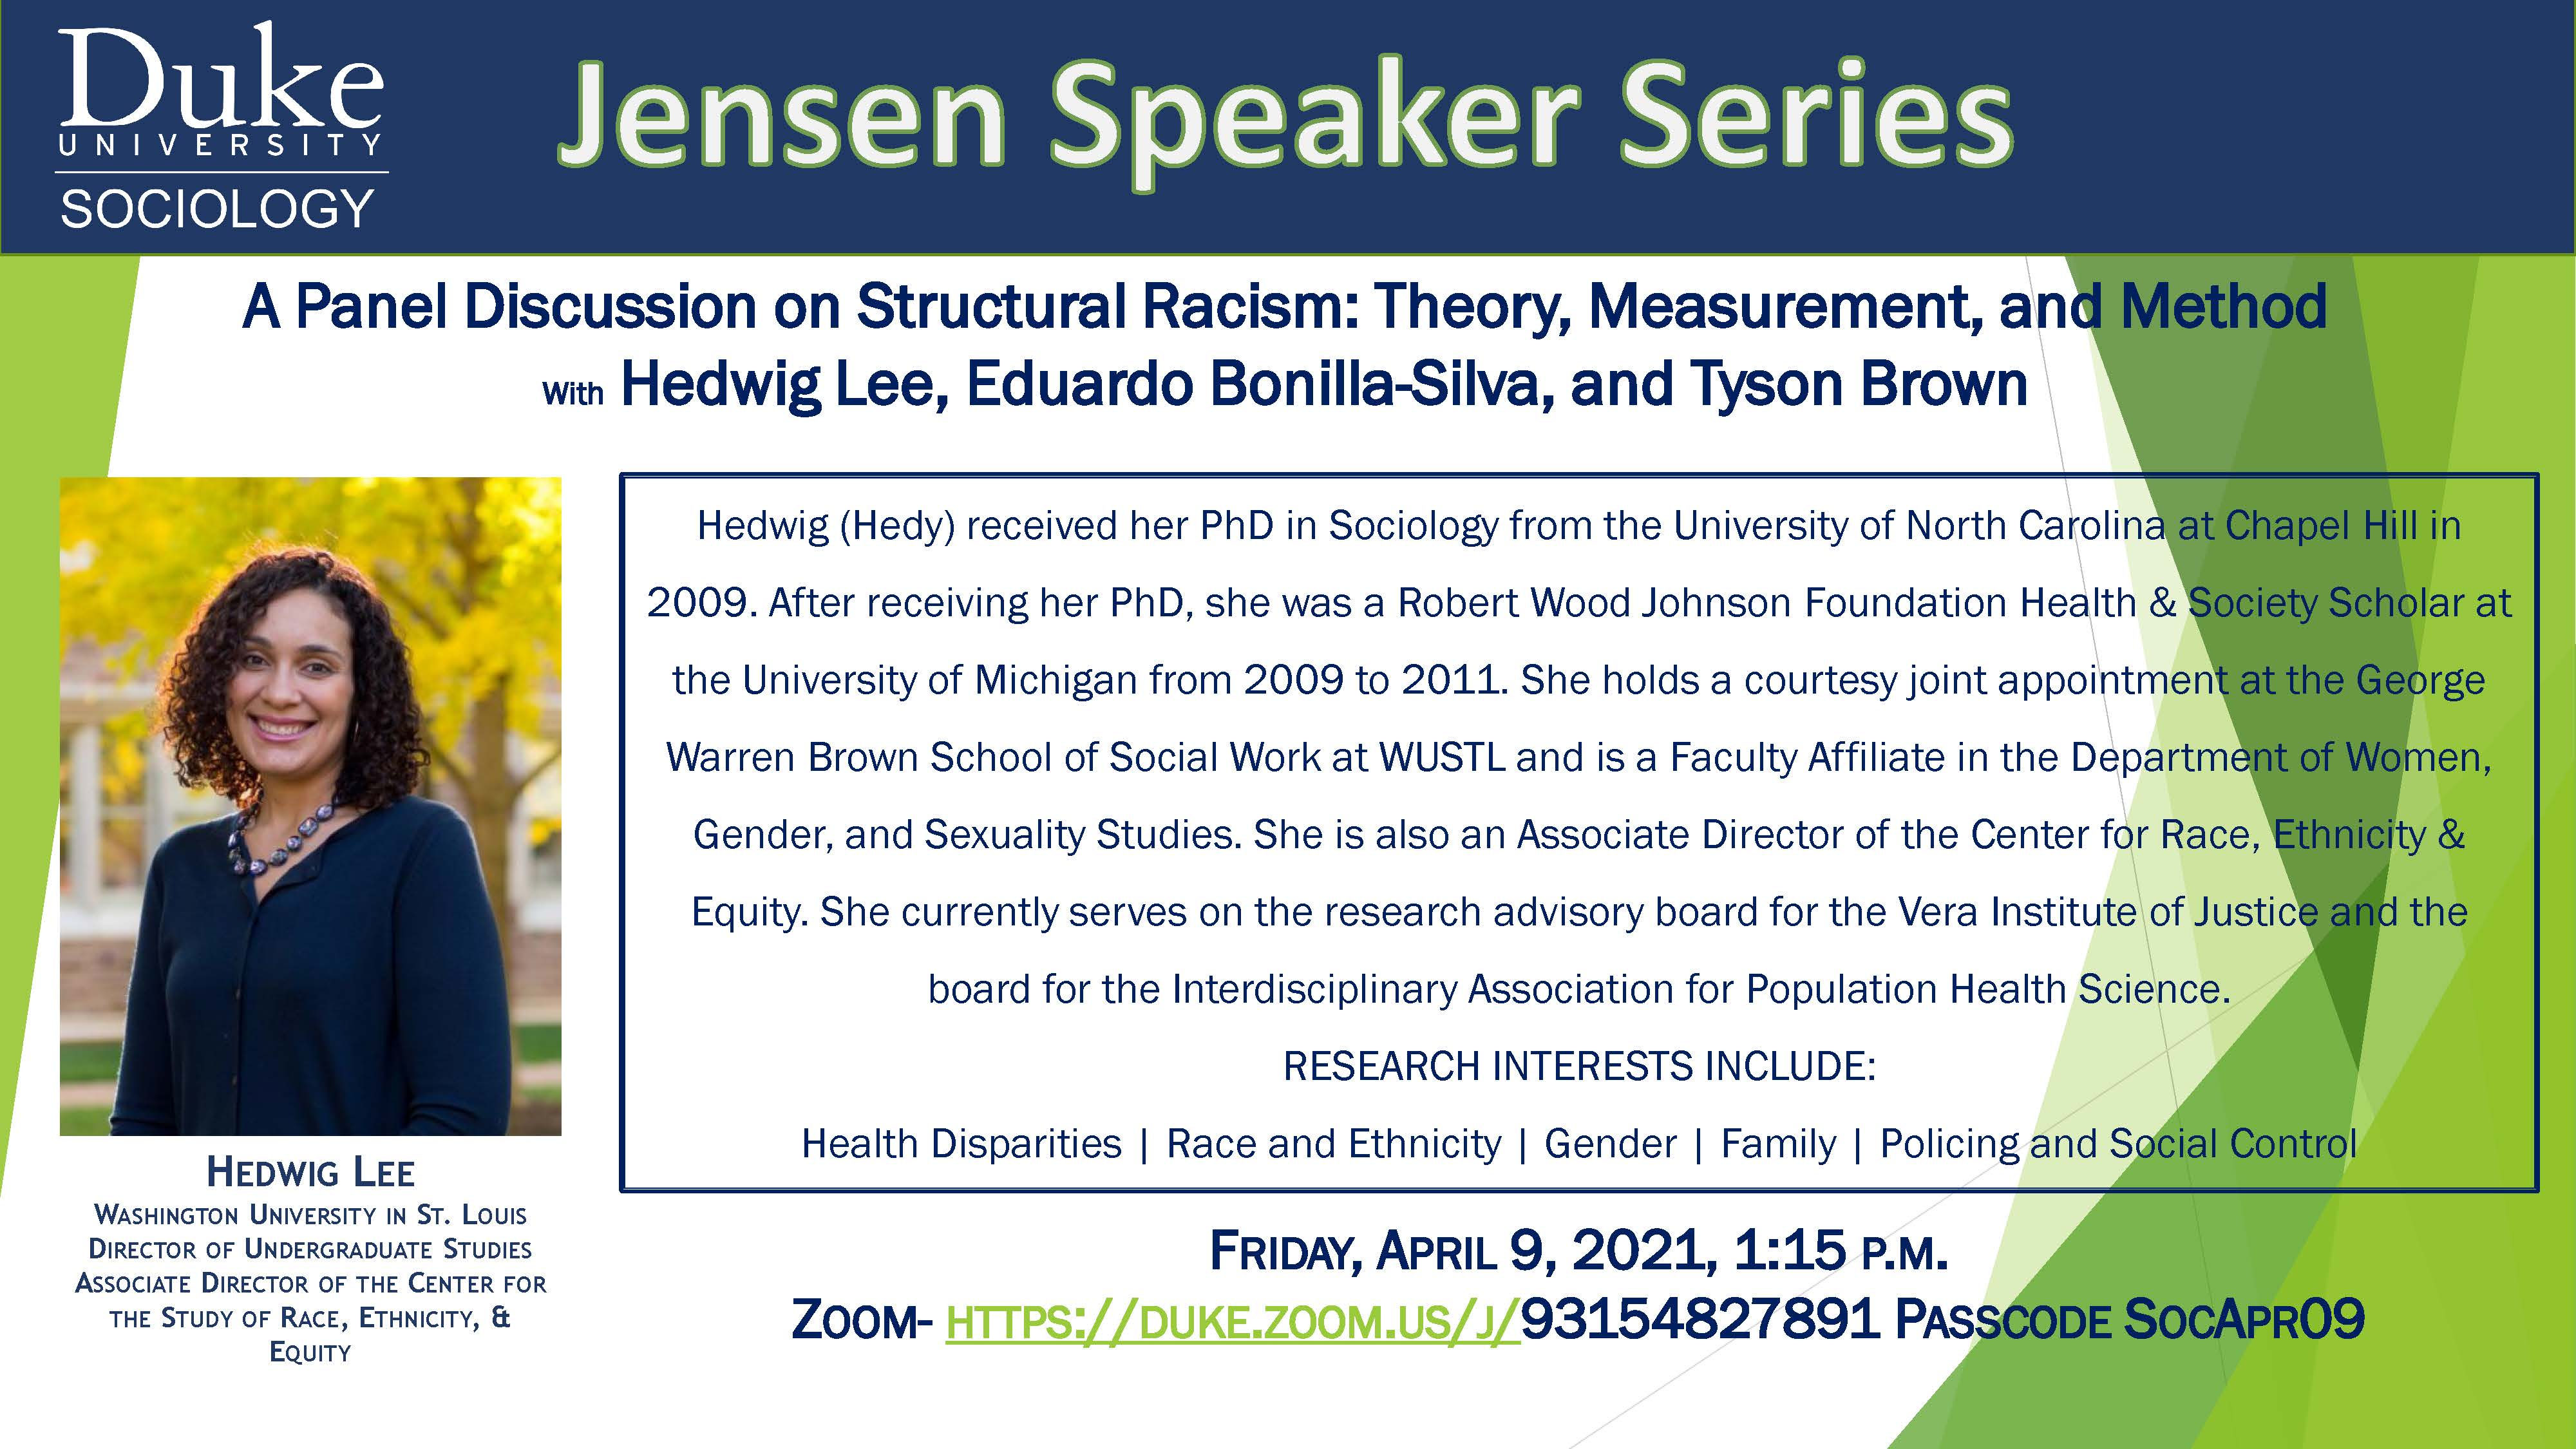 Duke Sociology Jensen Speaker Series Presents: A Panel Discussion on Structural Racism: Theory, Measurement, and Method With Hedwig Lee, Eduardo Bonilla-Silva, and Tyson Brown